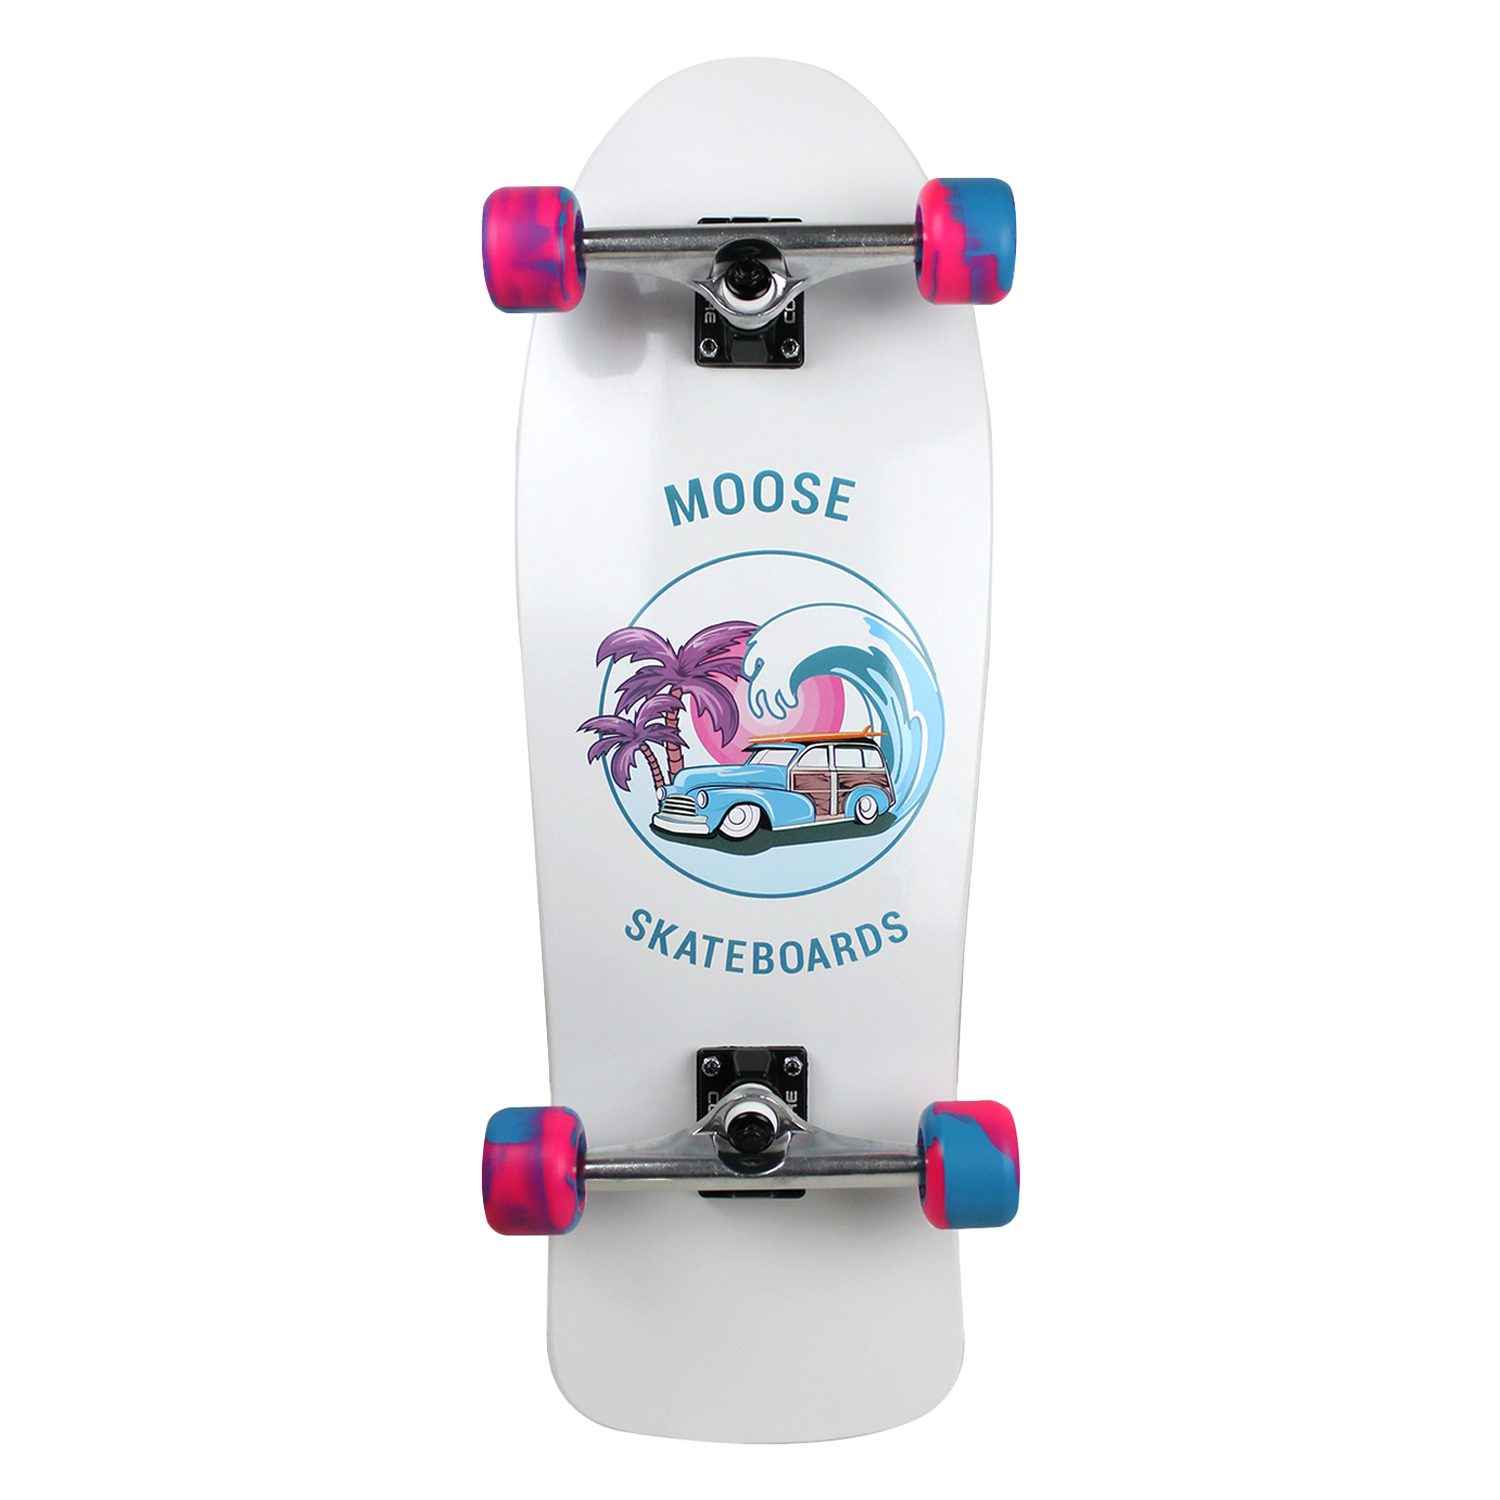 Moose Skateboard Old School Complete Sunset Cruise Blue Pink 10in x 30in